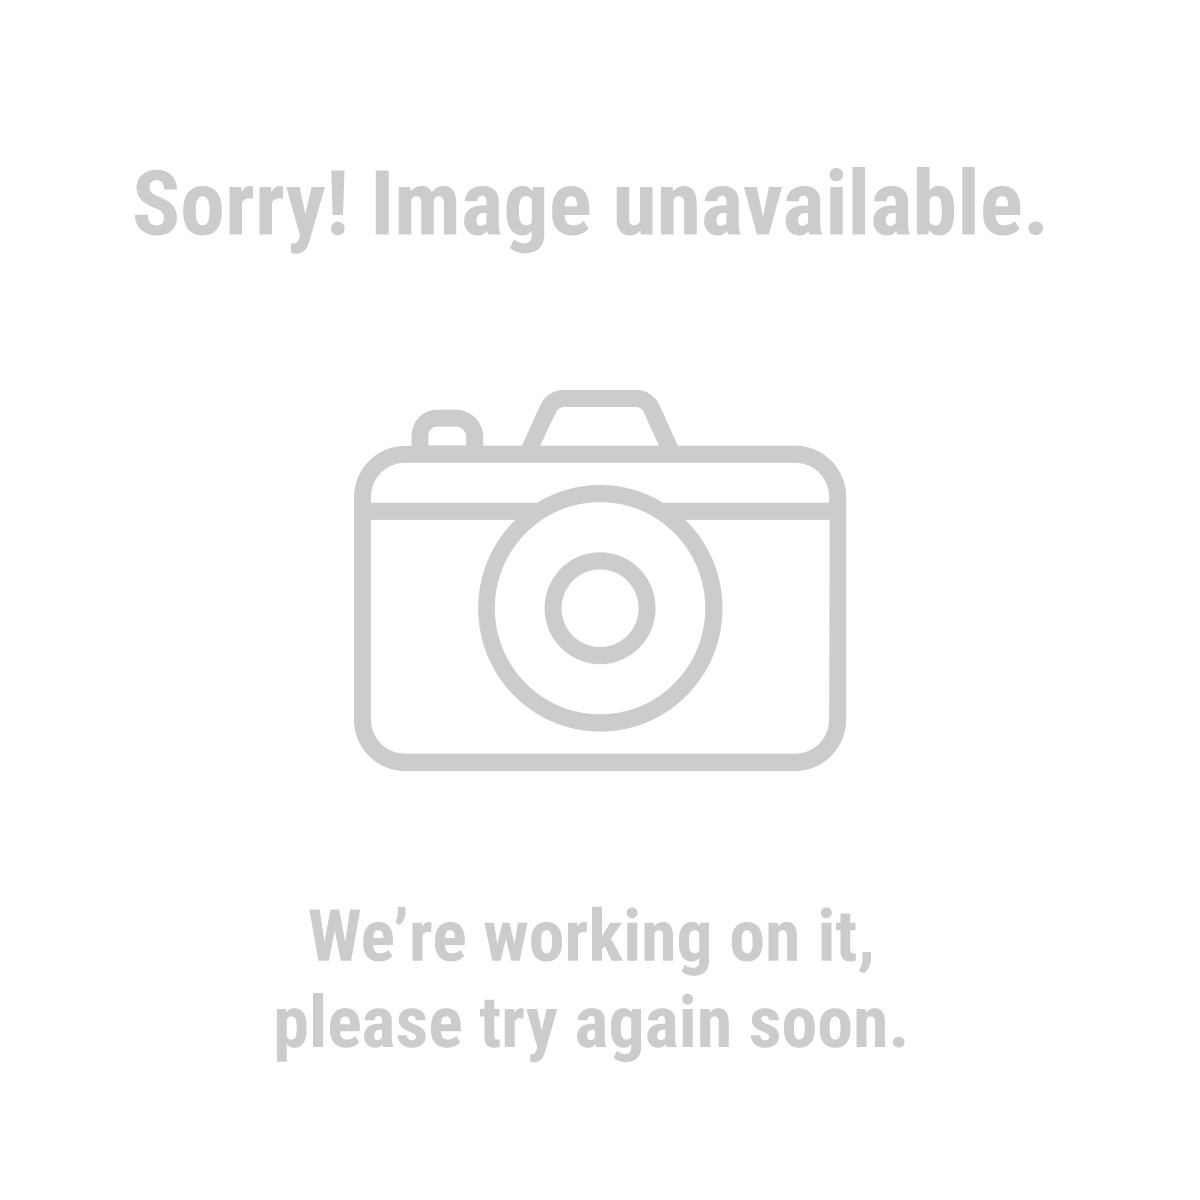 Central-Machinery 94282 5 Gallon Wet/Dry Vacuum Blower